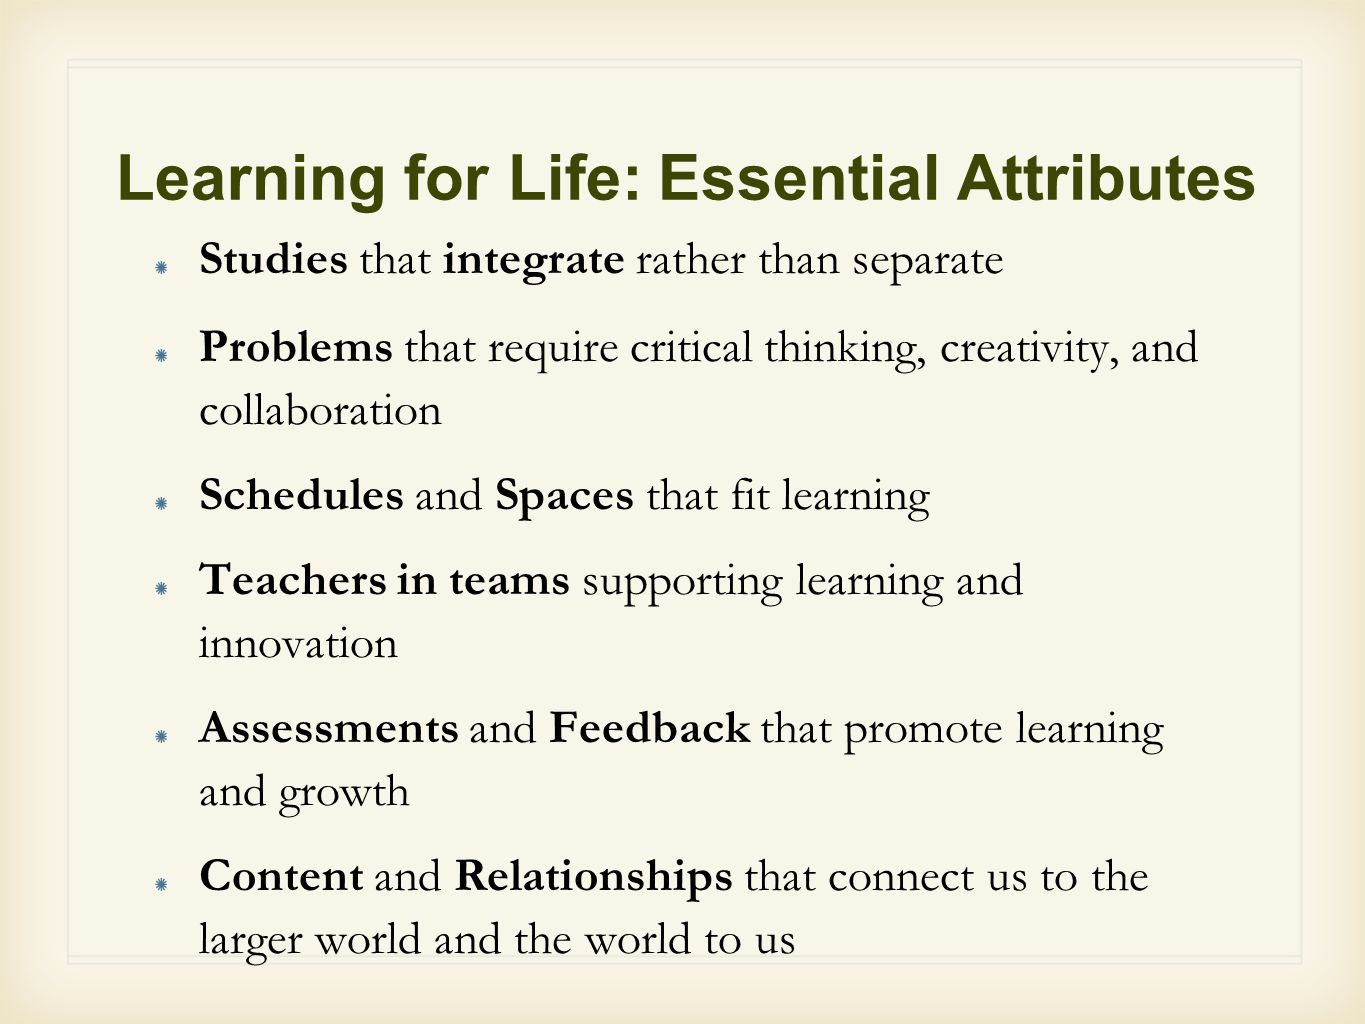 Learning for Life: Essential Attributes